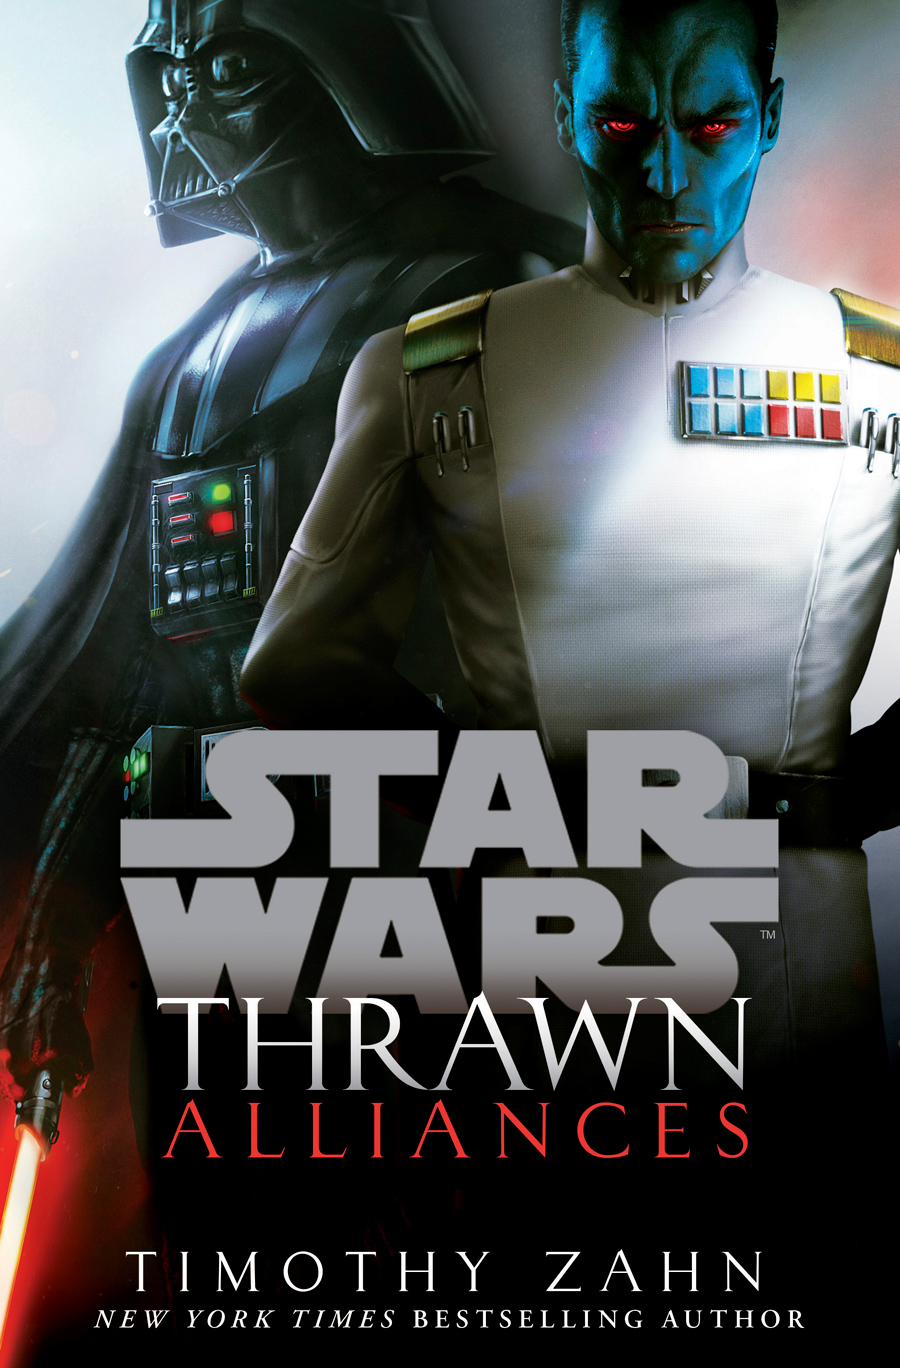 'Thrawn: Alliances' by Timothy Zahn (reviewed by Skuldren)